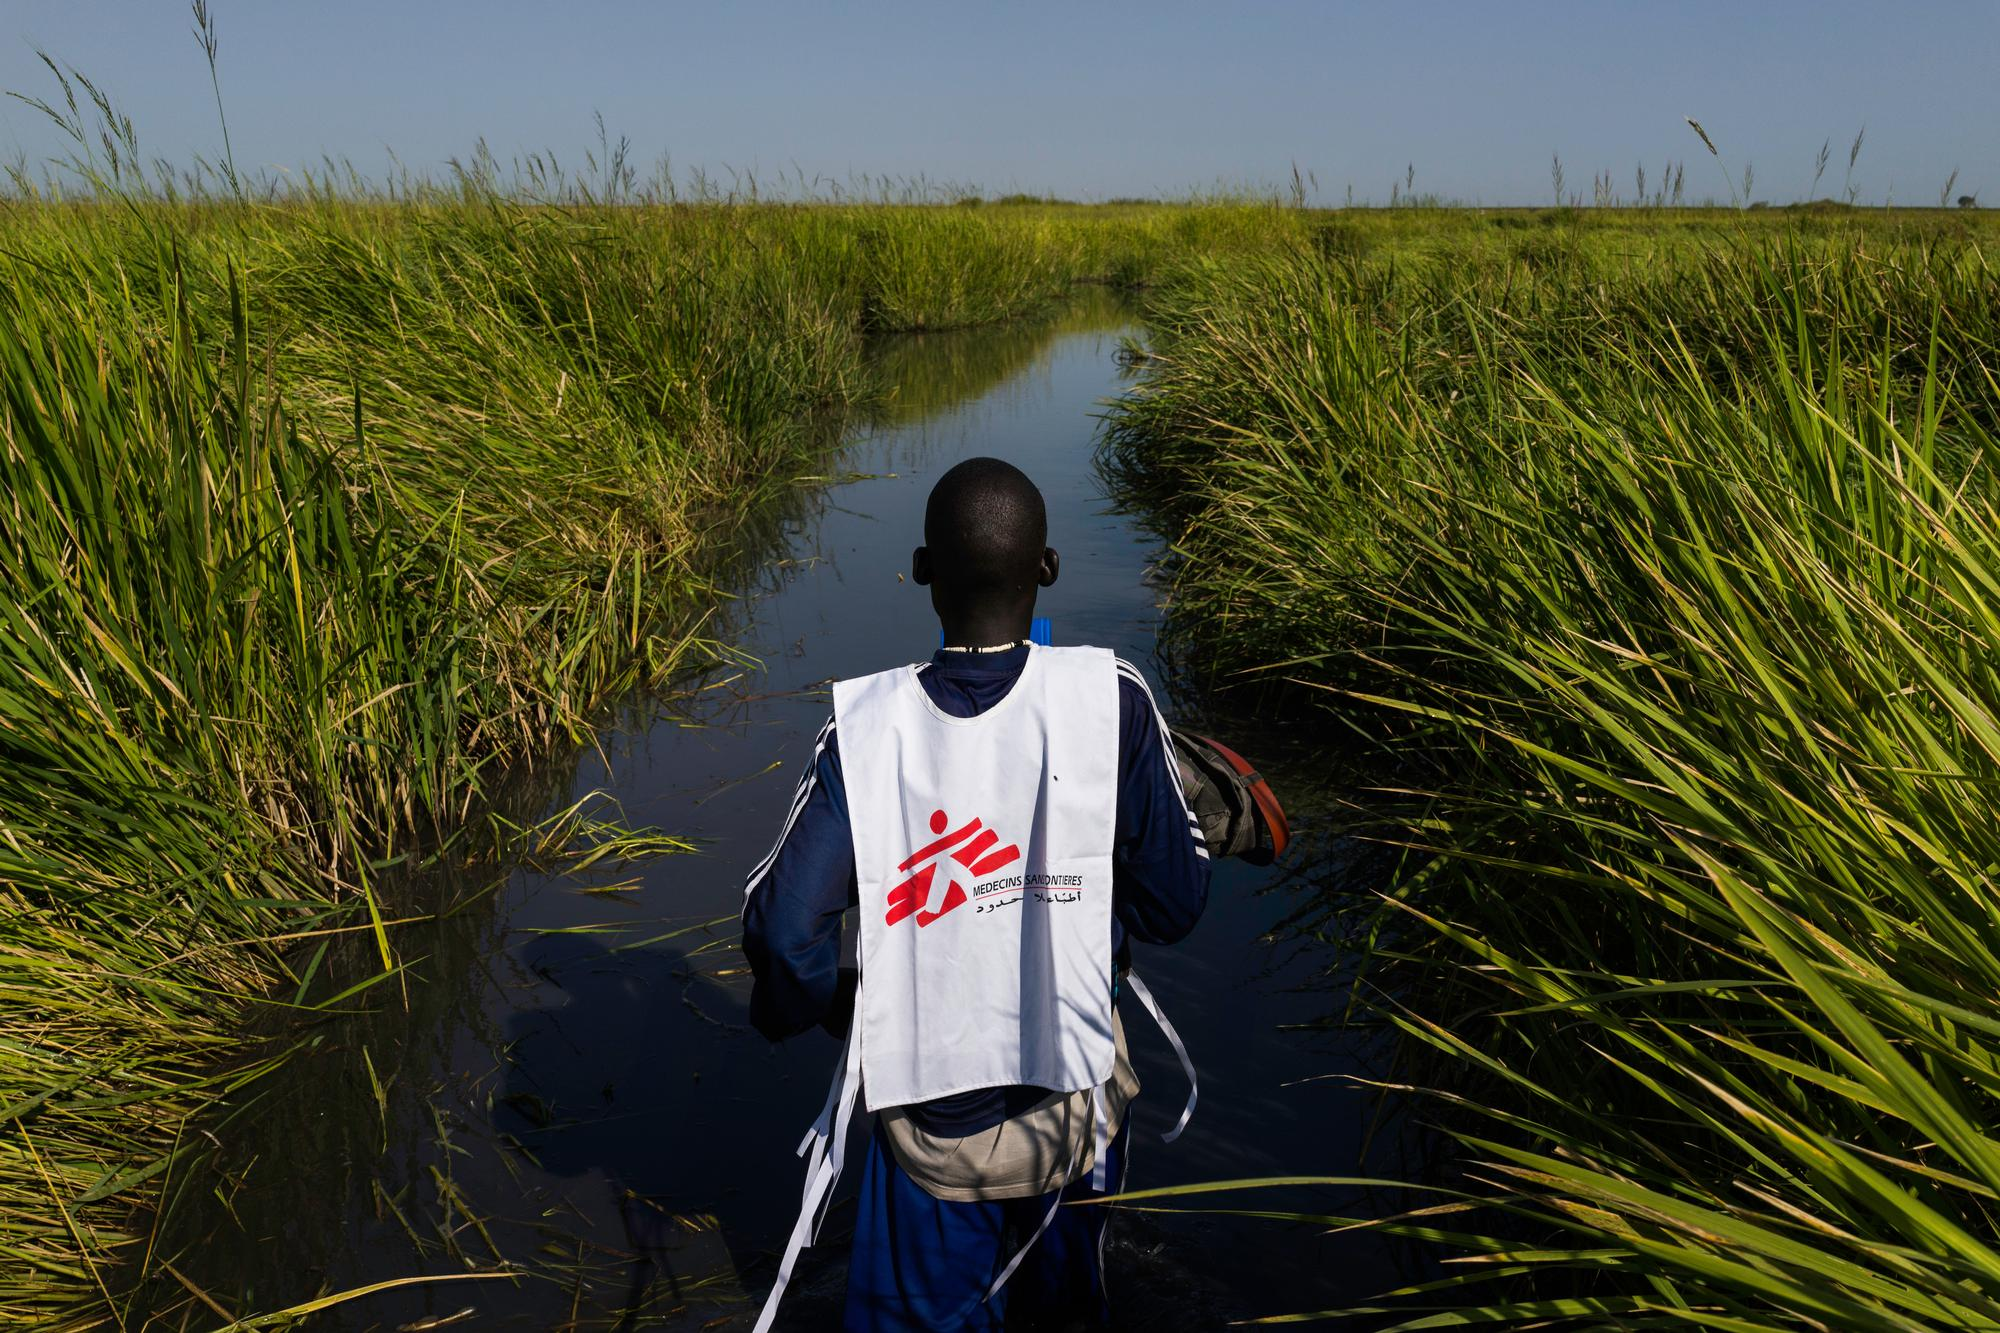 An MSF worker stands with his back to the camera in a channel of water surrounded by tall grass.